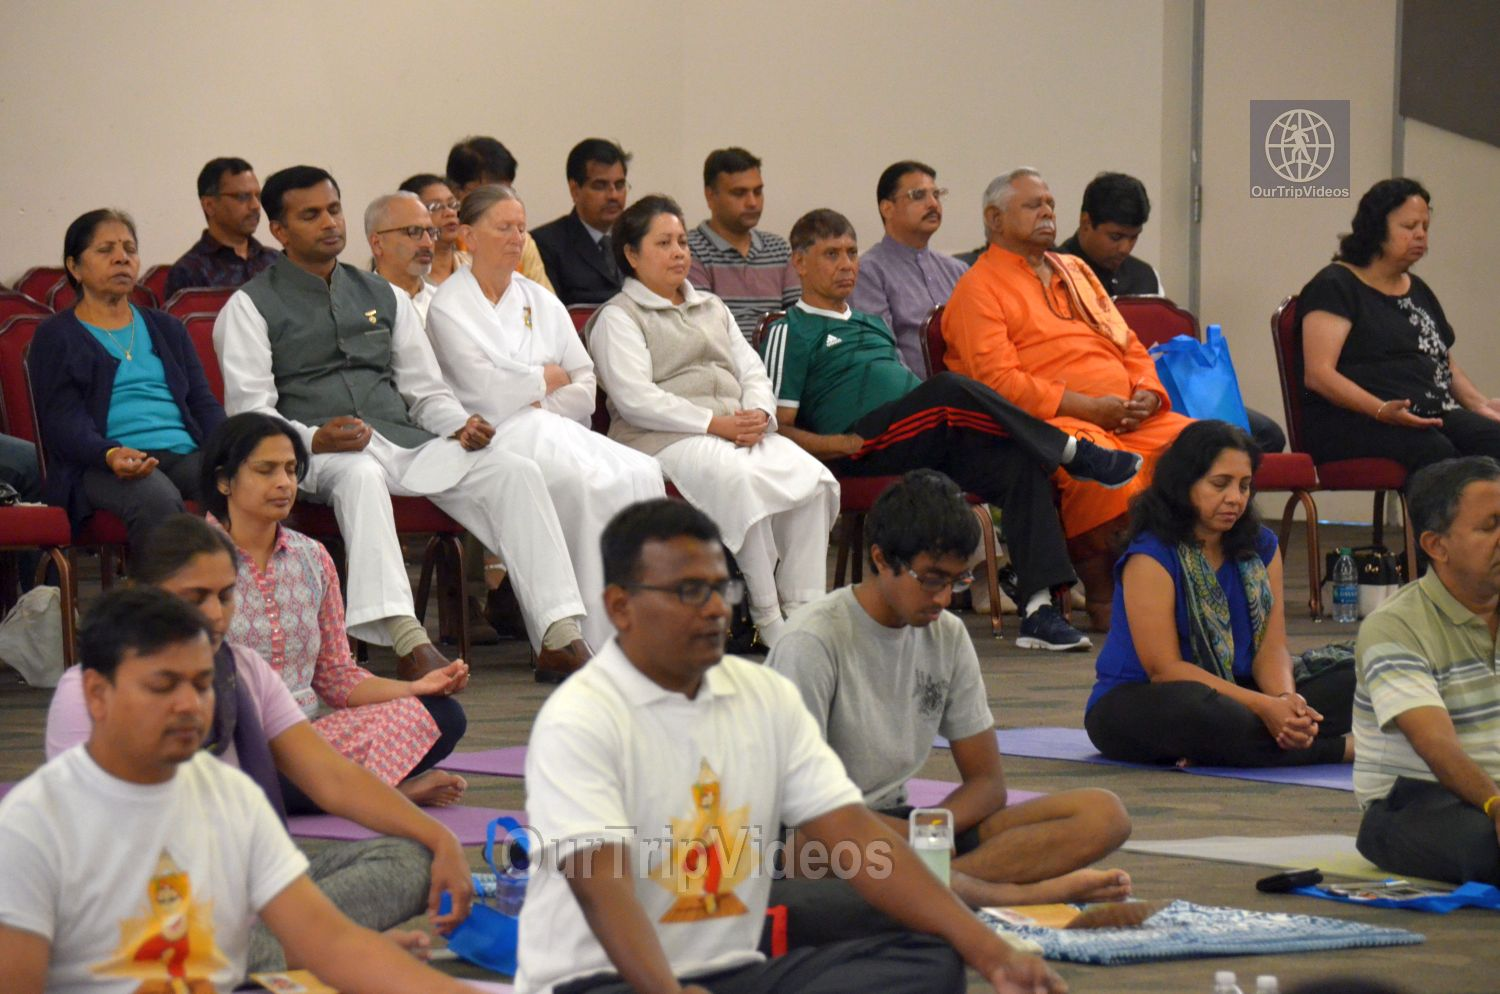 International Yoga Day at ICC, Milpitas, CA, USA - Picture 28 of 50